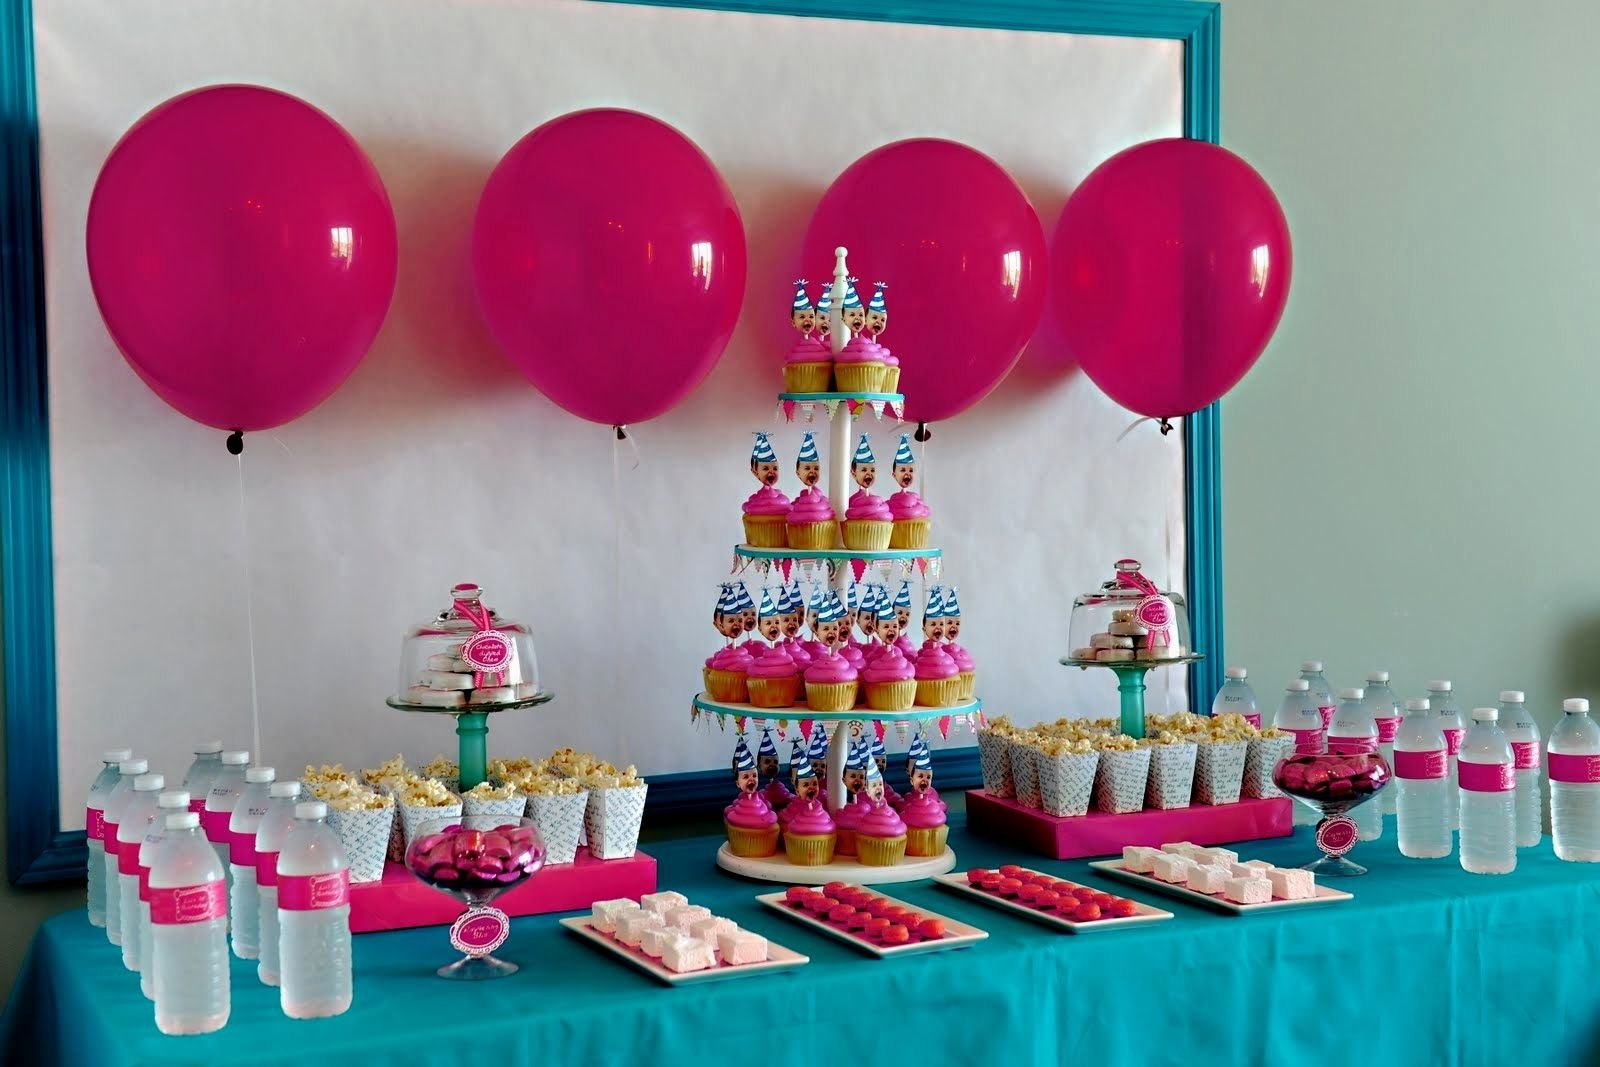 10 Great Girl 1St Birthday Party Ideas 1st birthday party ideas for girl the minimalist nyc 4 2020